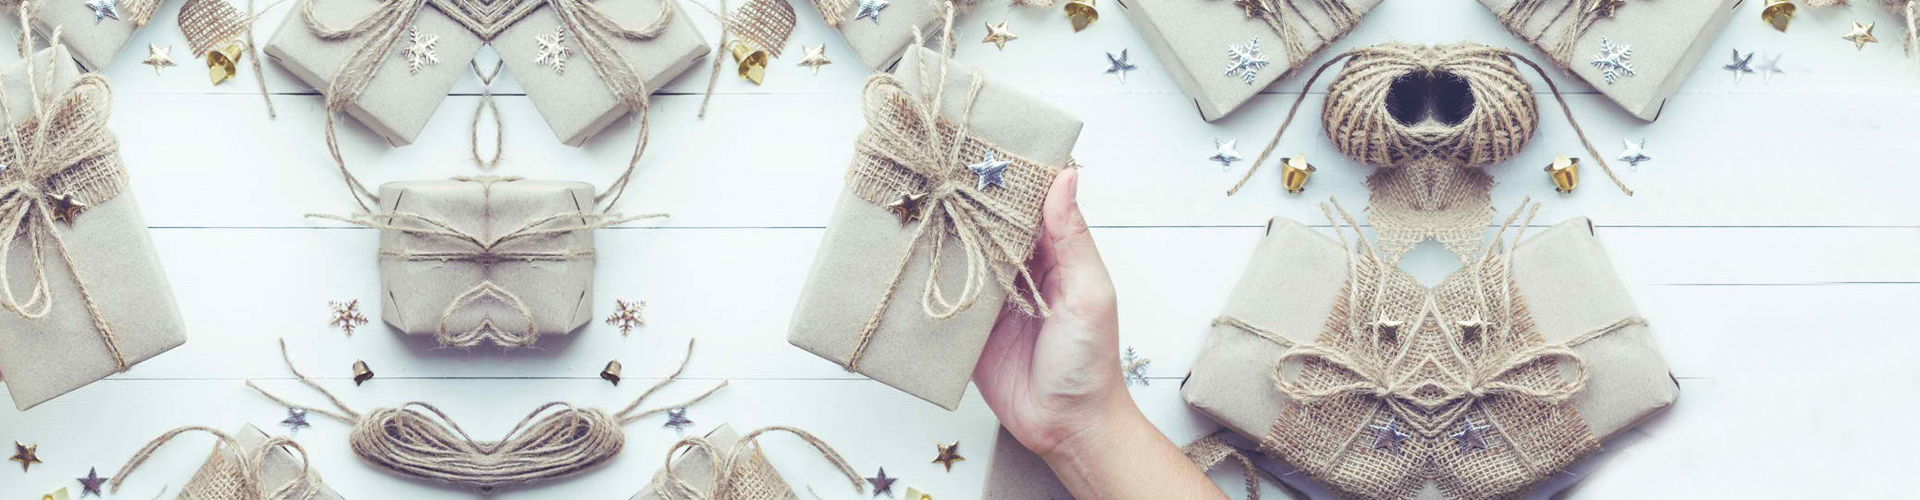 a hand holding a gift